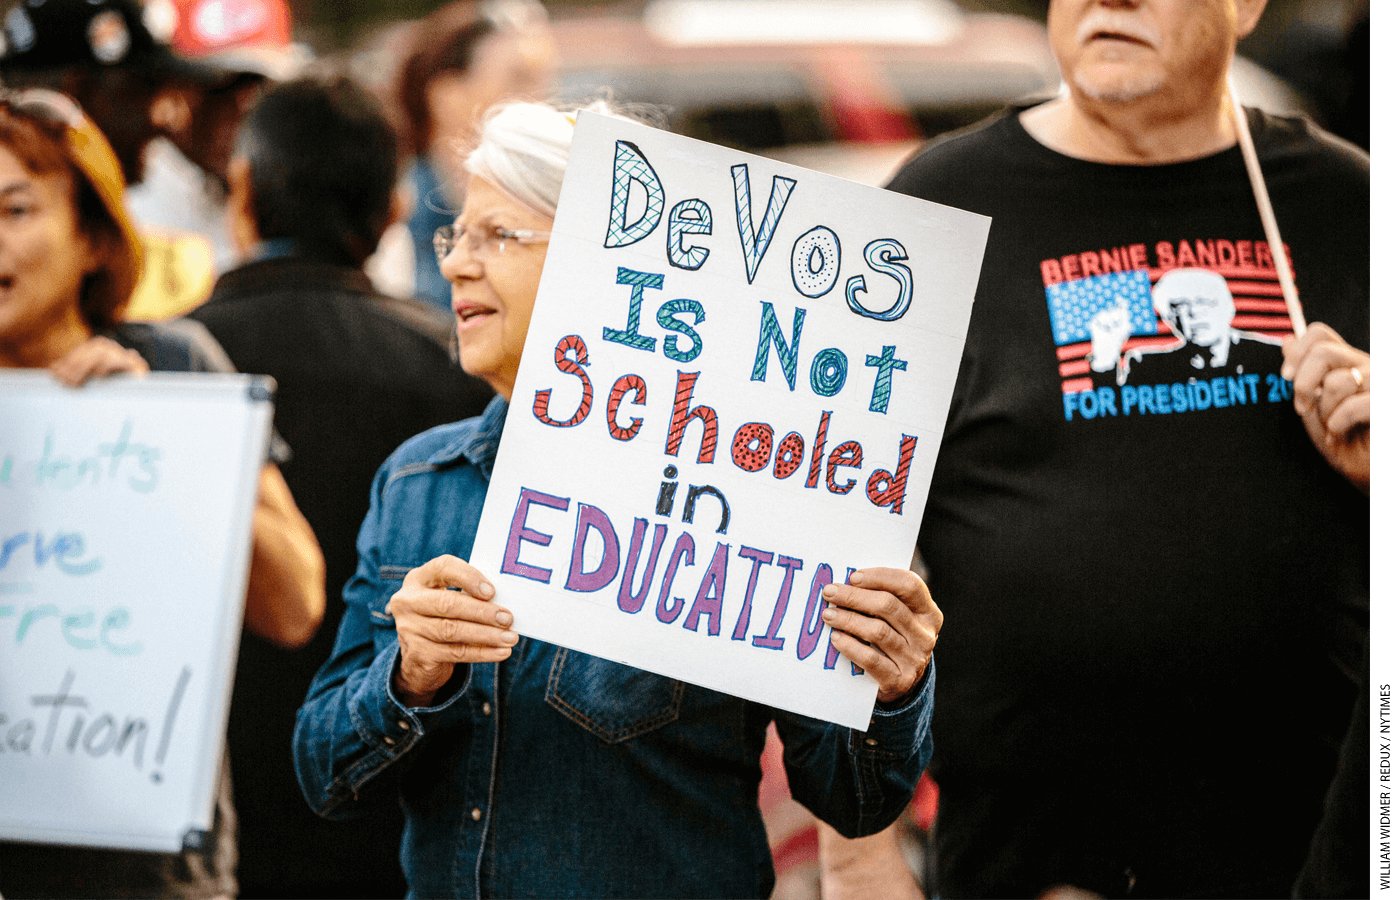 When teachers unions attacked DeVos as unqualified, they were expressing their concerns about her lack of working with them.